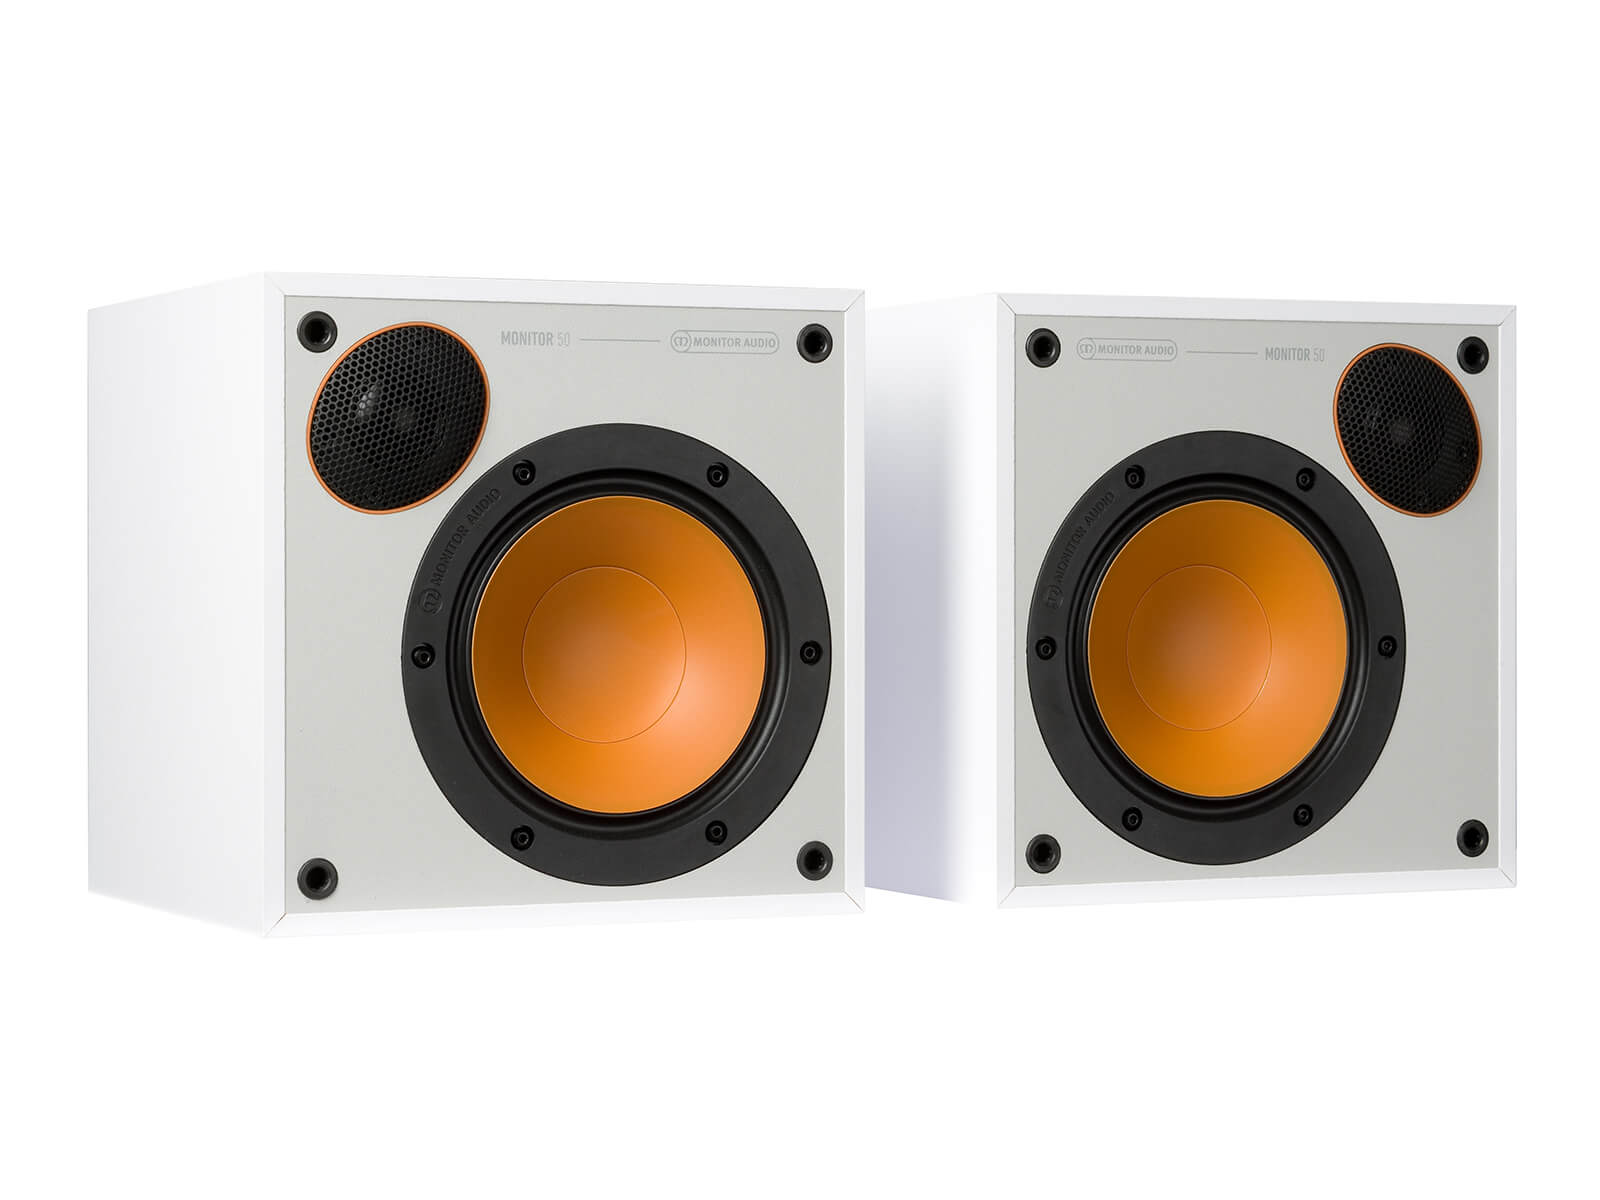 Monitor 50, bookshelf speakers, without grilles in a white finish.